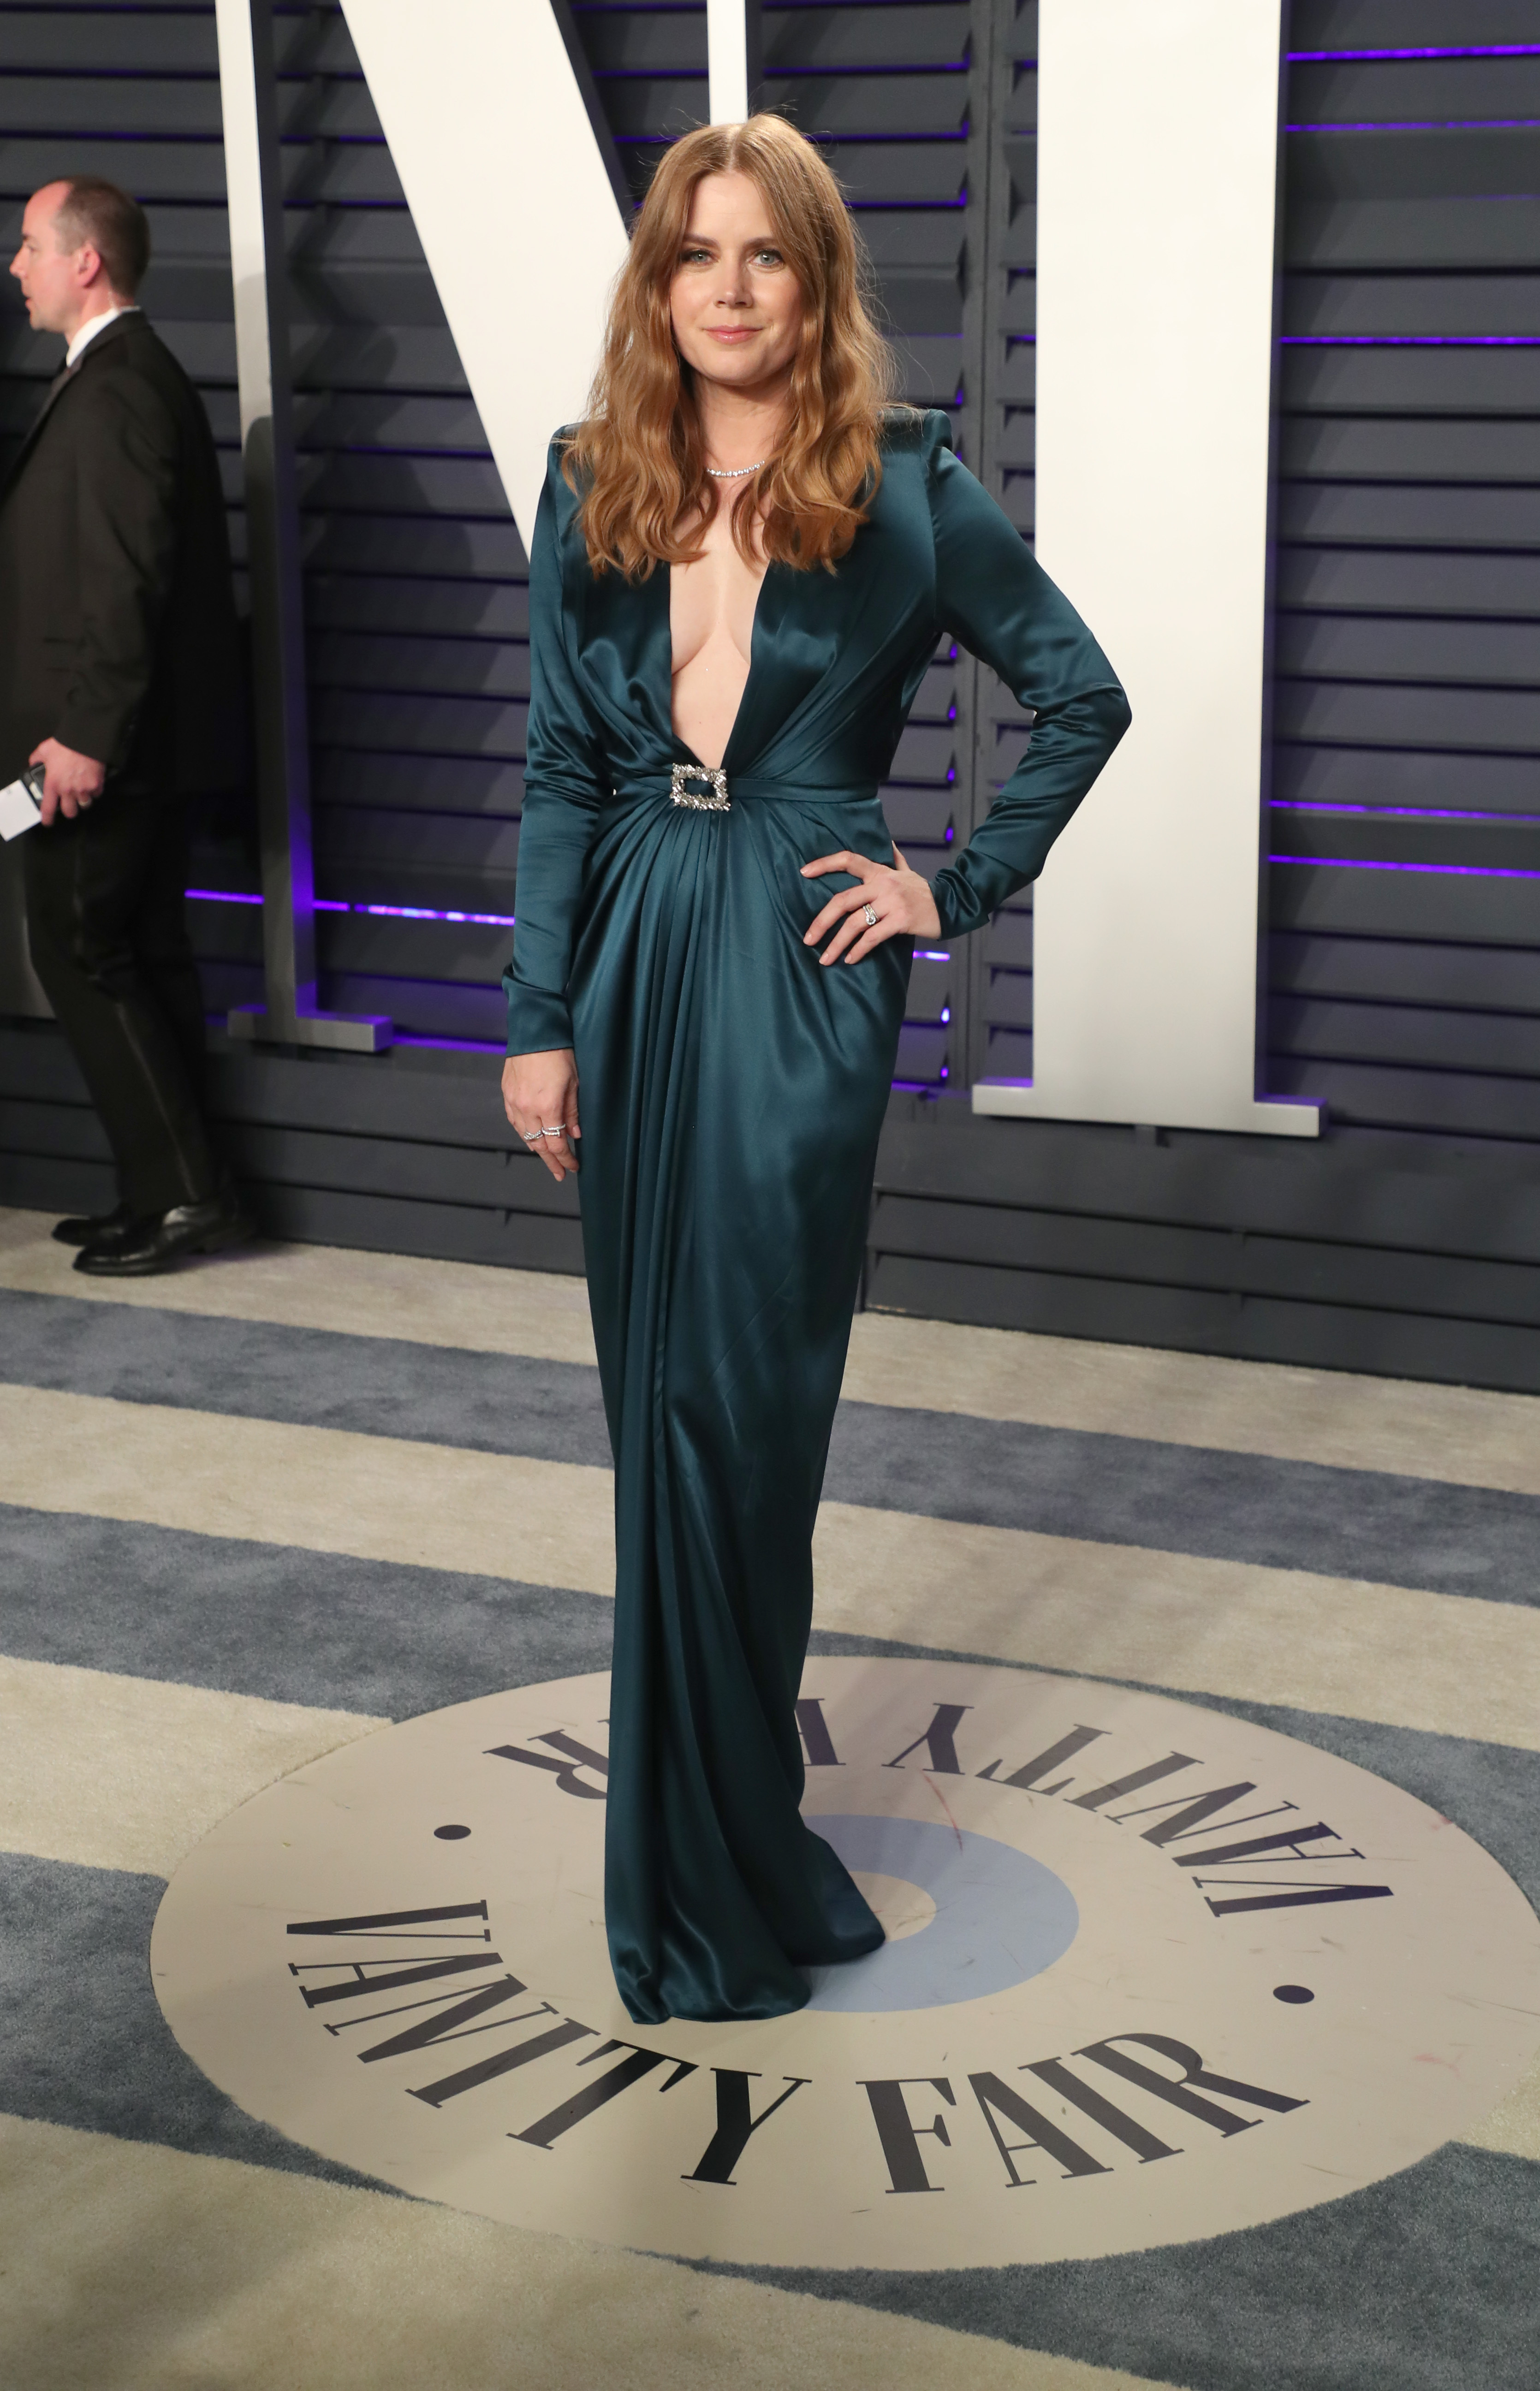 Amy Adams attends the Vanity Fair Oscar Party in Beverly Hills on Feb. 24, 2019.